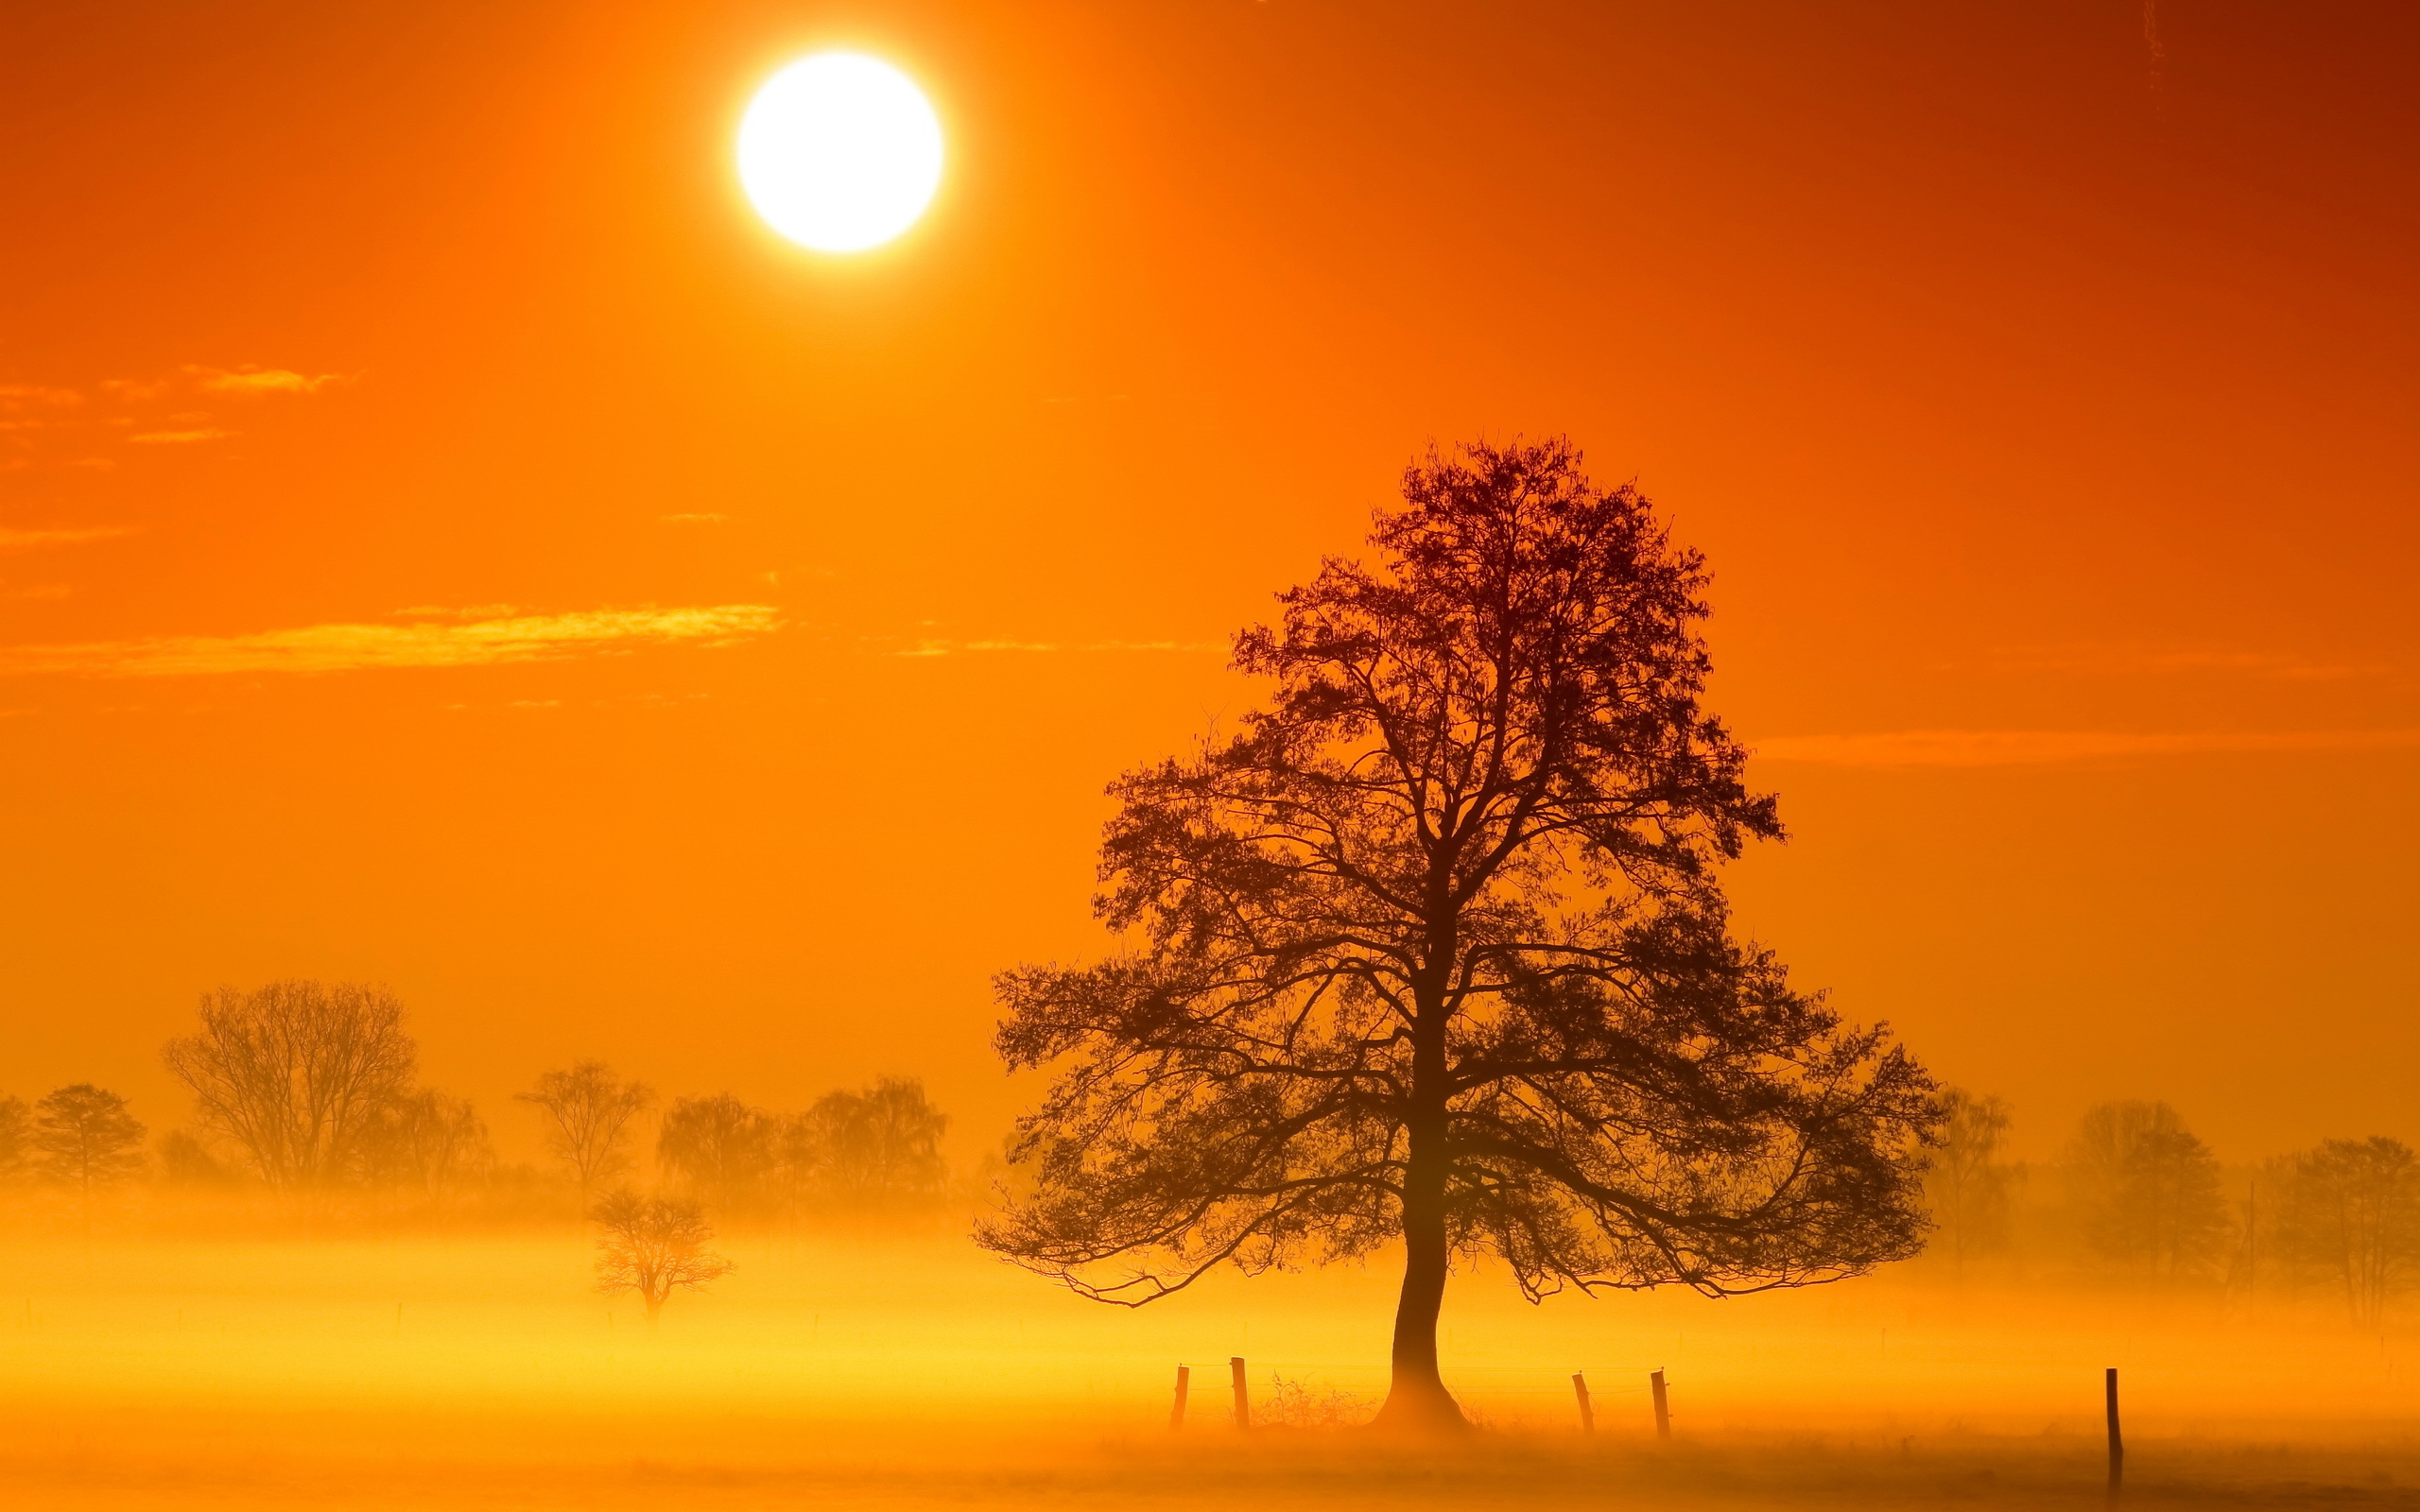 Morning Sunshine Pictures, Photos, and Images for Facebook